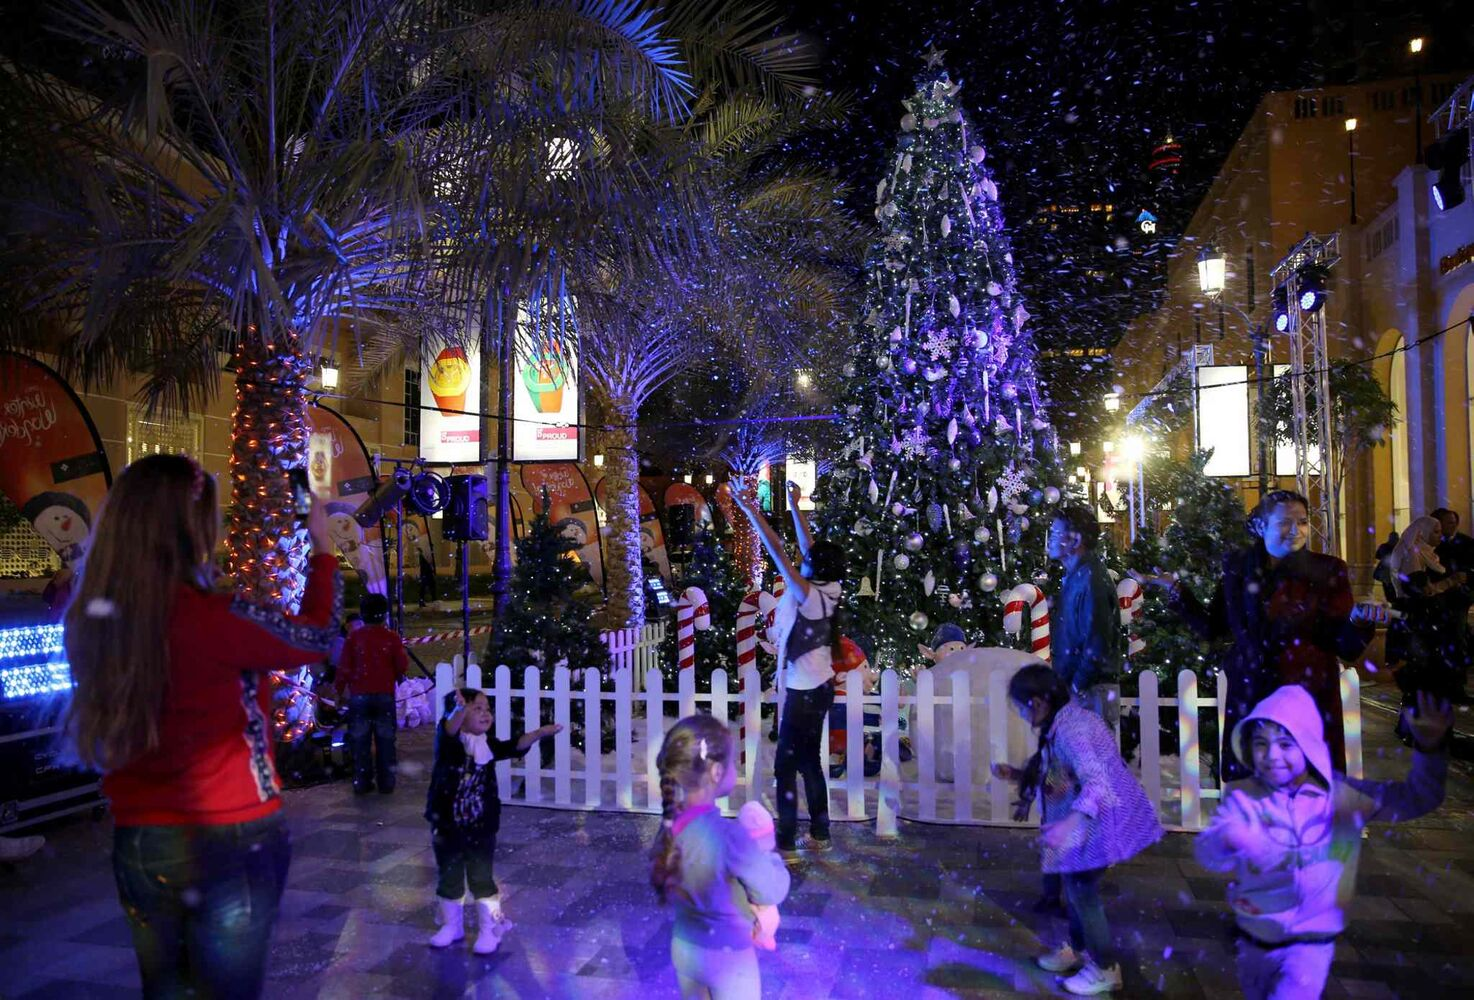 Visitors enjoy artificial snow spraying over a Christmas tree at the Jumeirah Beach Residence, JBR Walk in Dubai, United Arab Emirates, Wednesday, Dec. 25, 2013.  (The Associated Press)